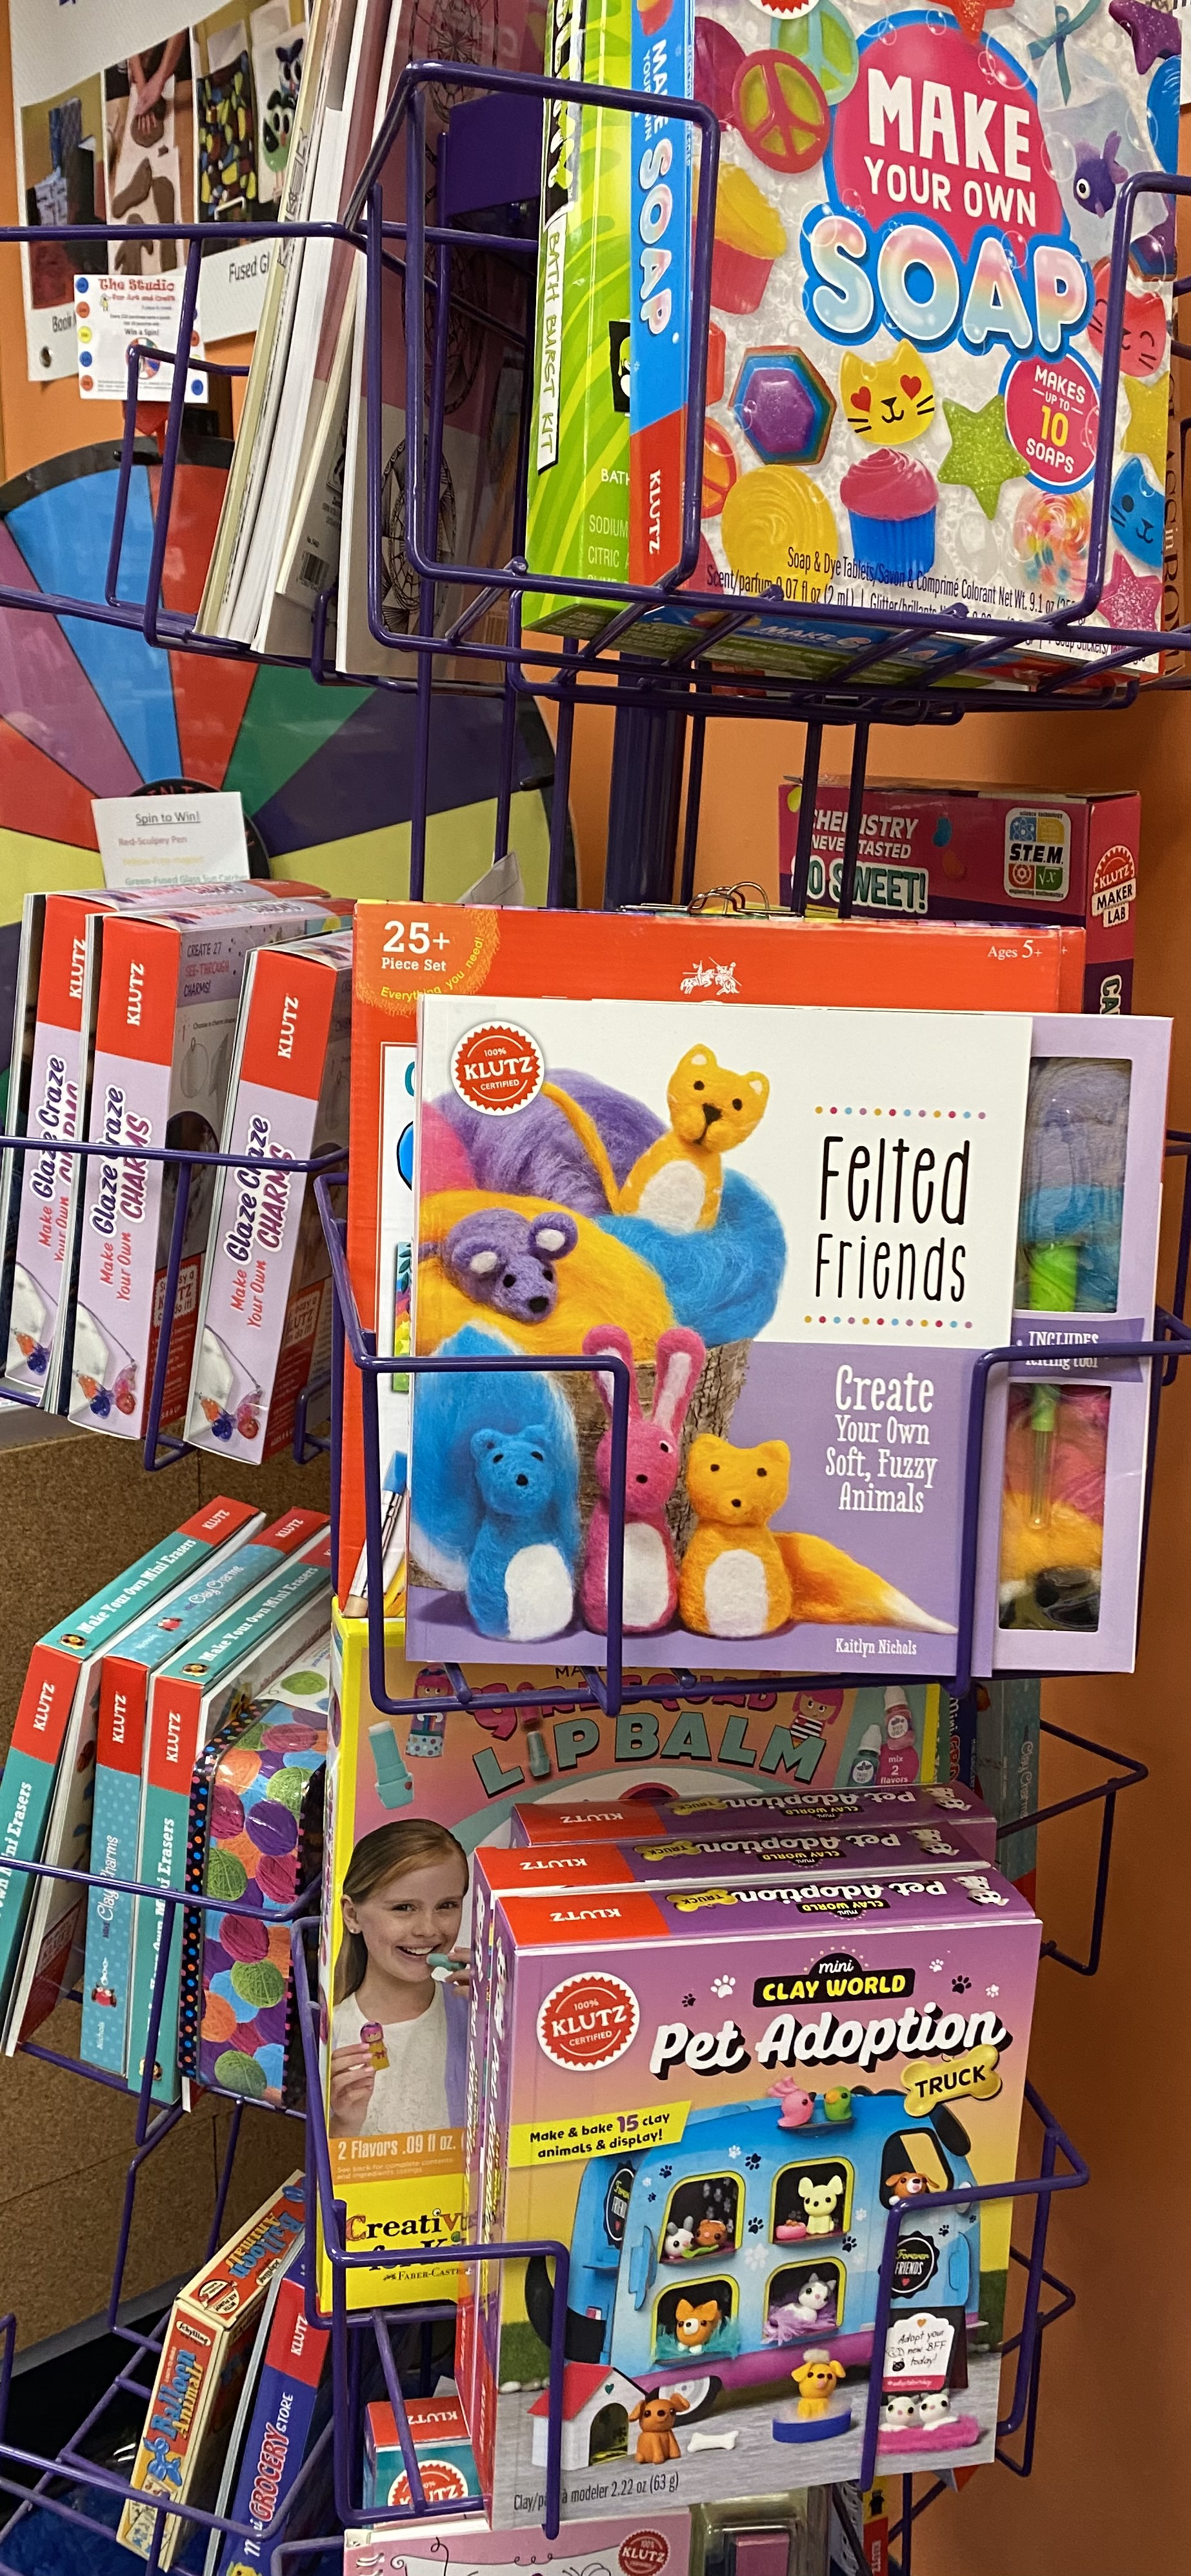 Klutz and other craft kits